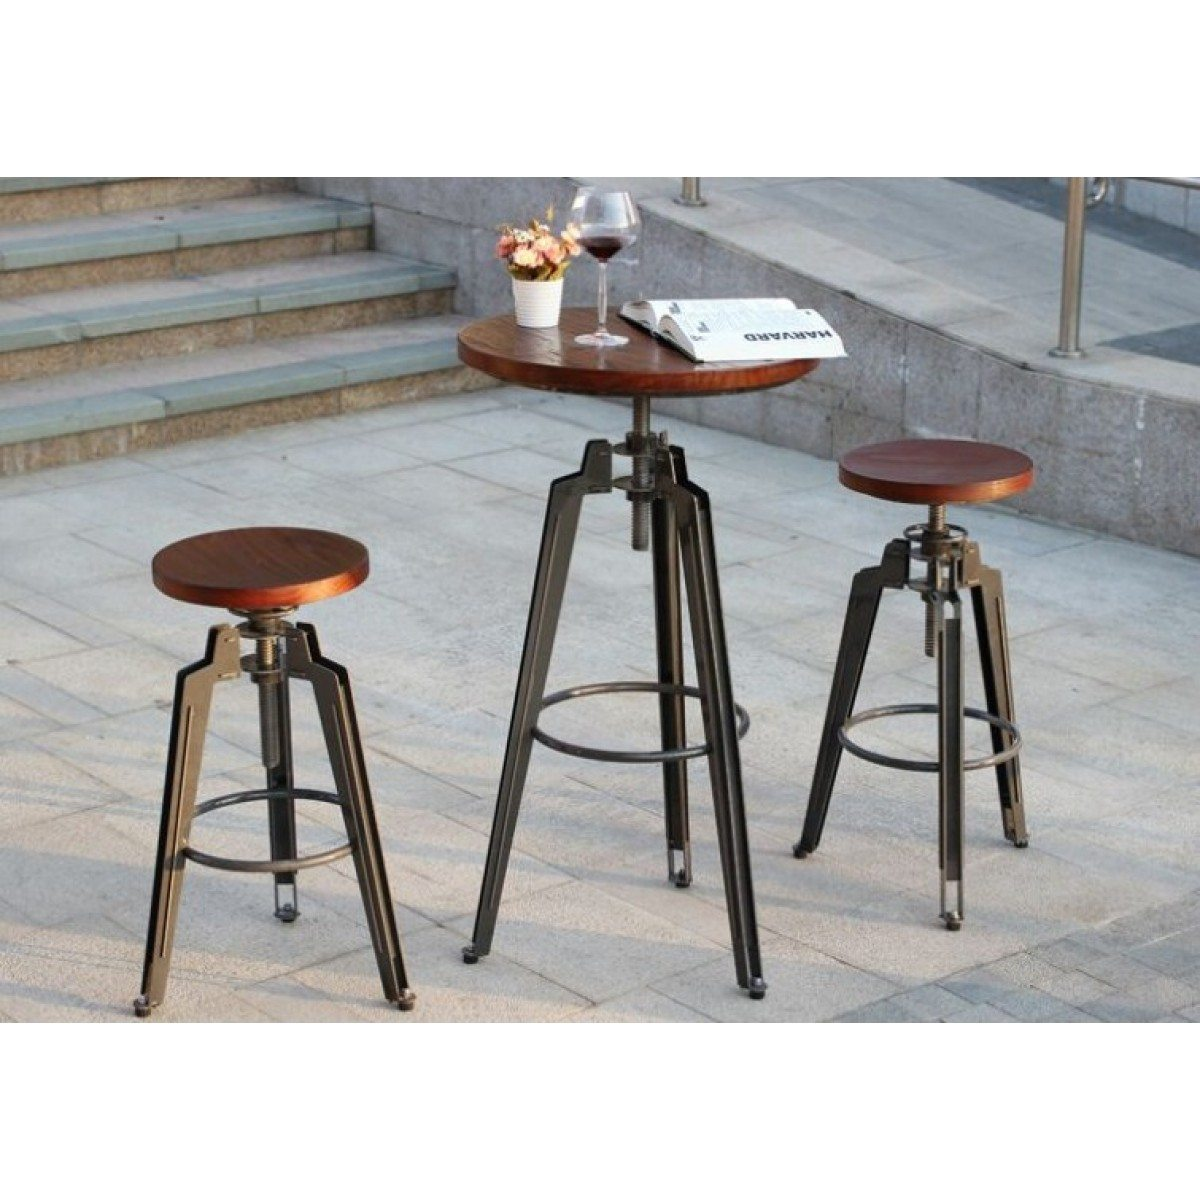 Cafe Table And Stools Available Online Or In Store From Bimbo Adelaide